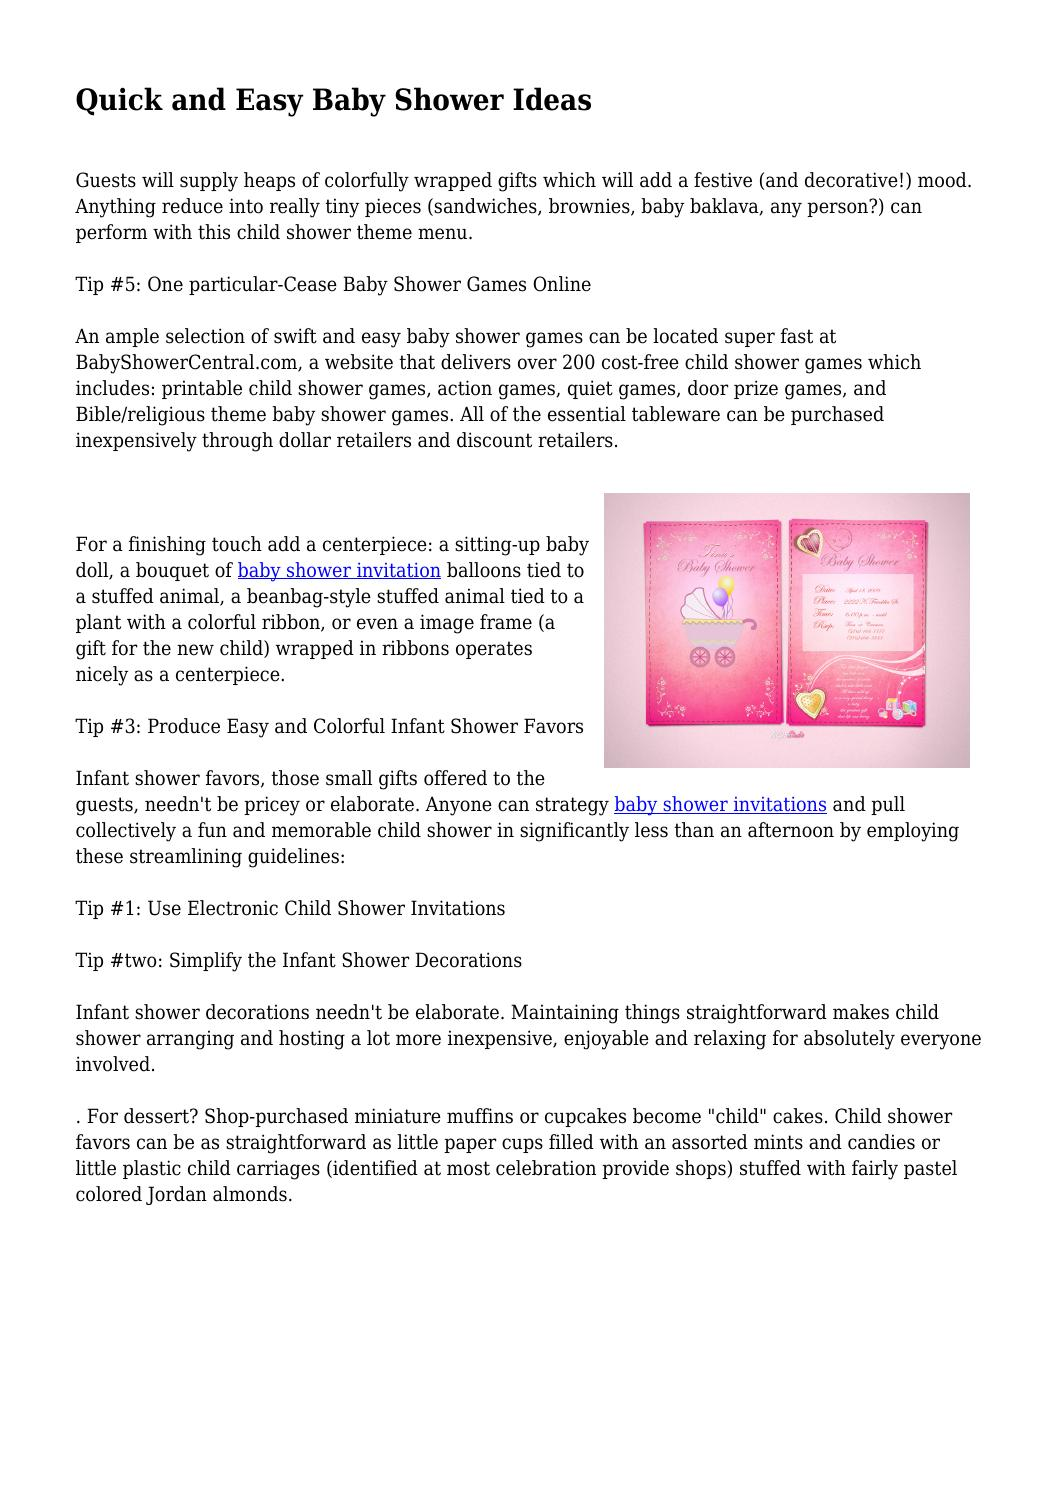 Quick And Easy Baby Shower Ideas By Likeableexcerpt91 Issuu